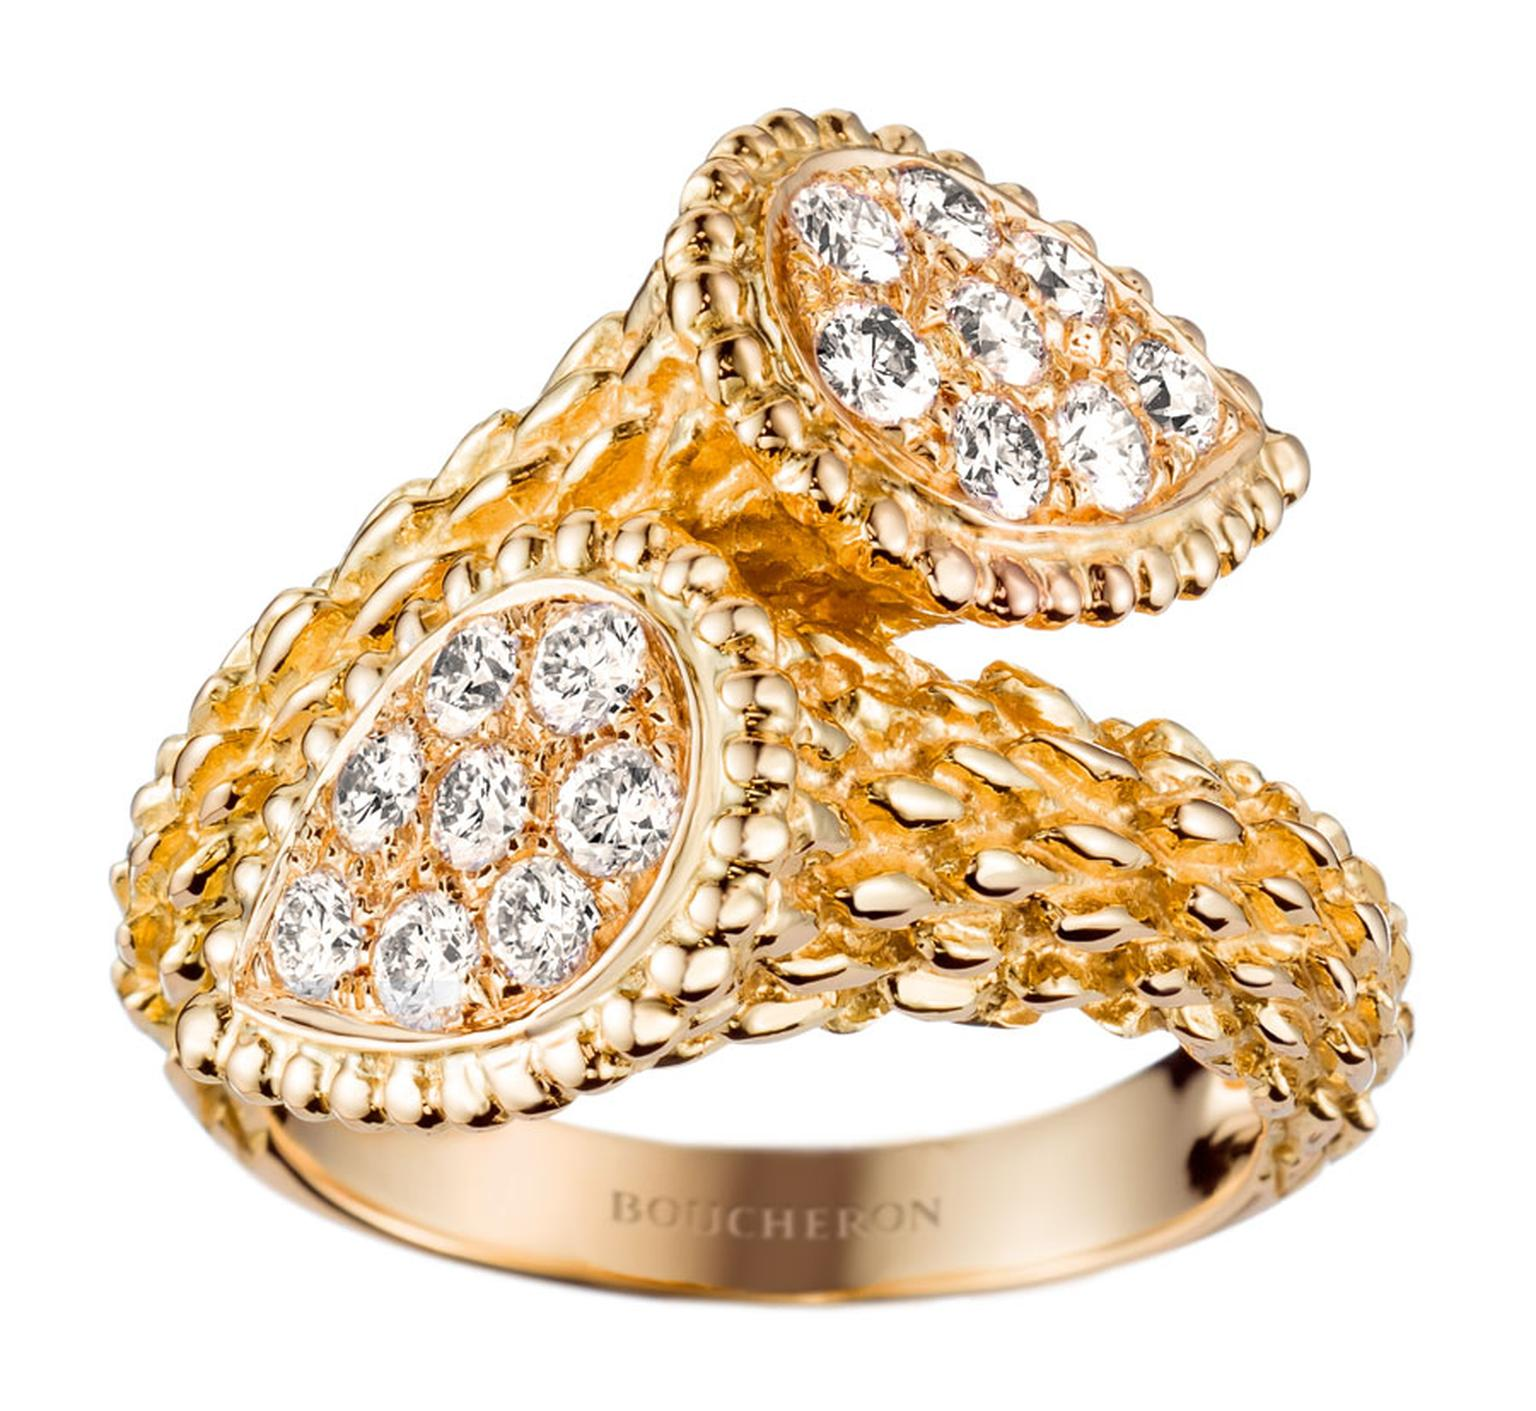 Serpent-Boheme-Toi-et-Moi-medium-ring-in-yellow-gold-set-with-diamonds.jpg